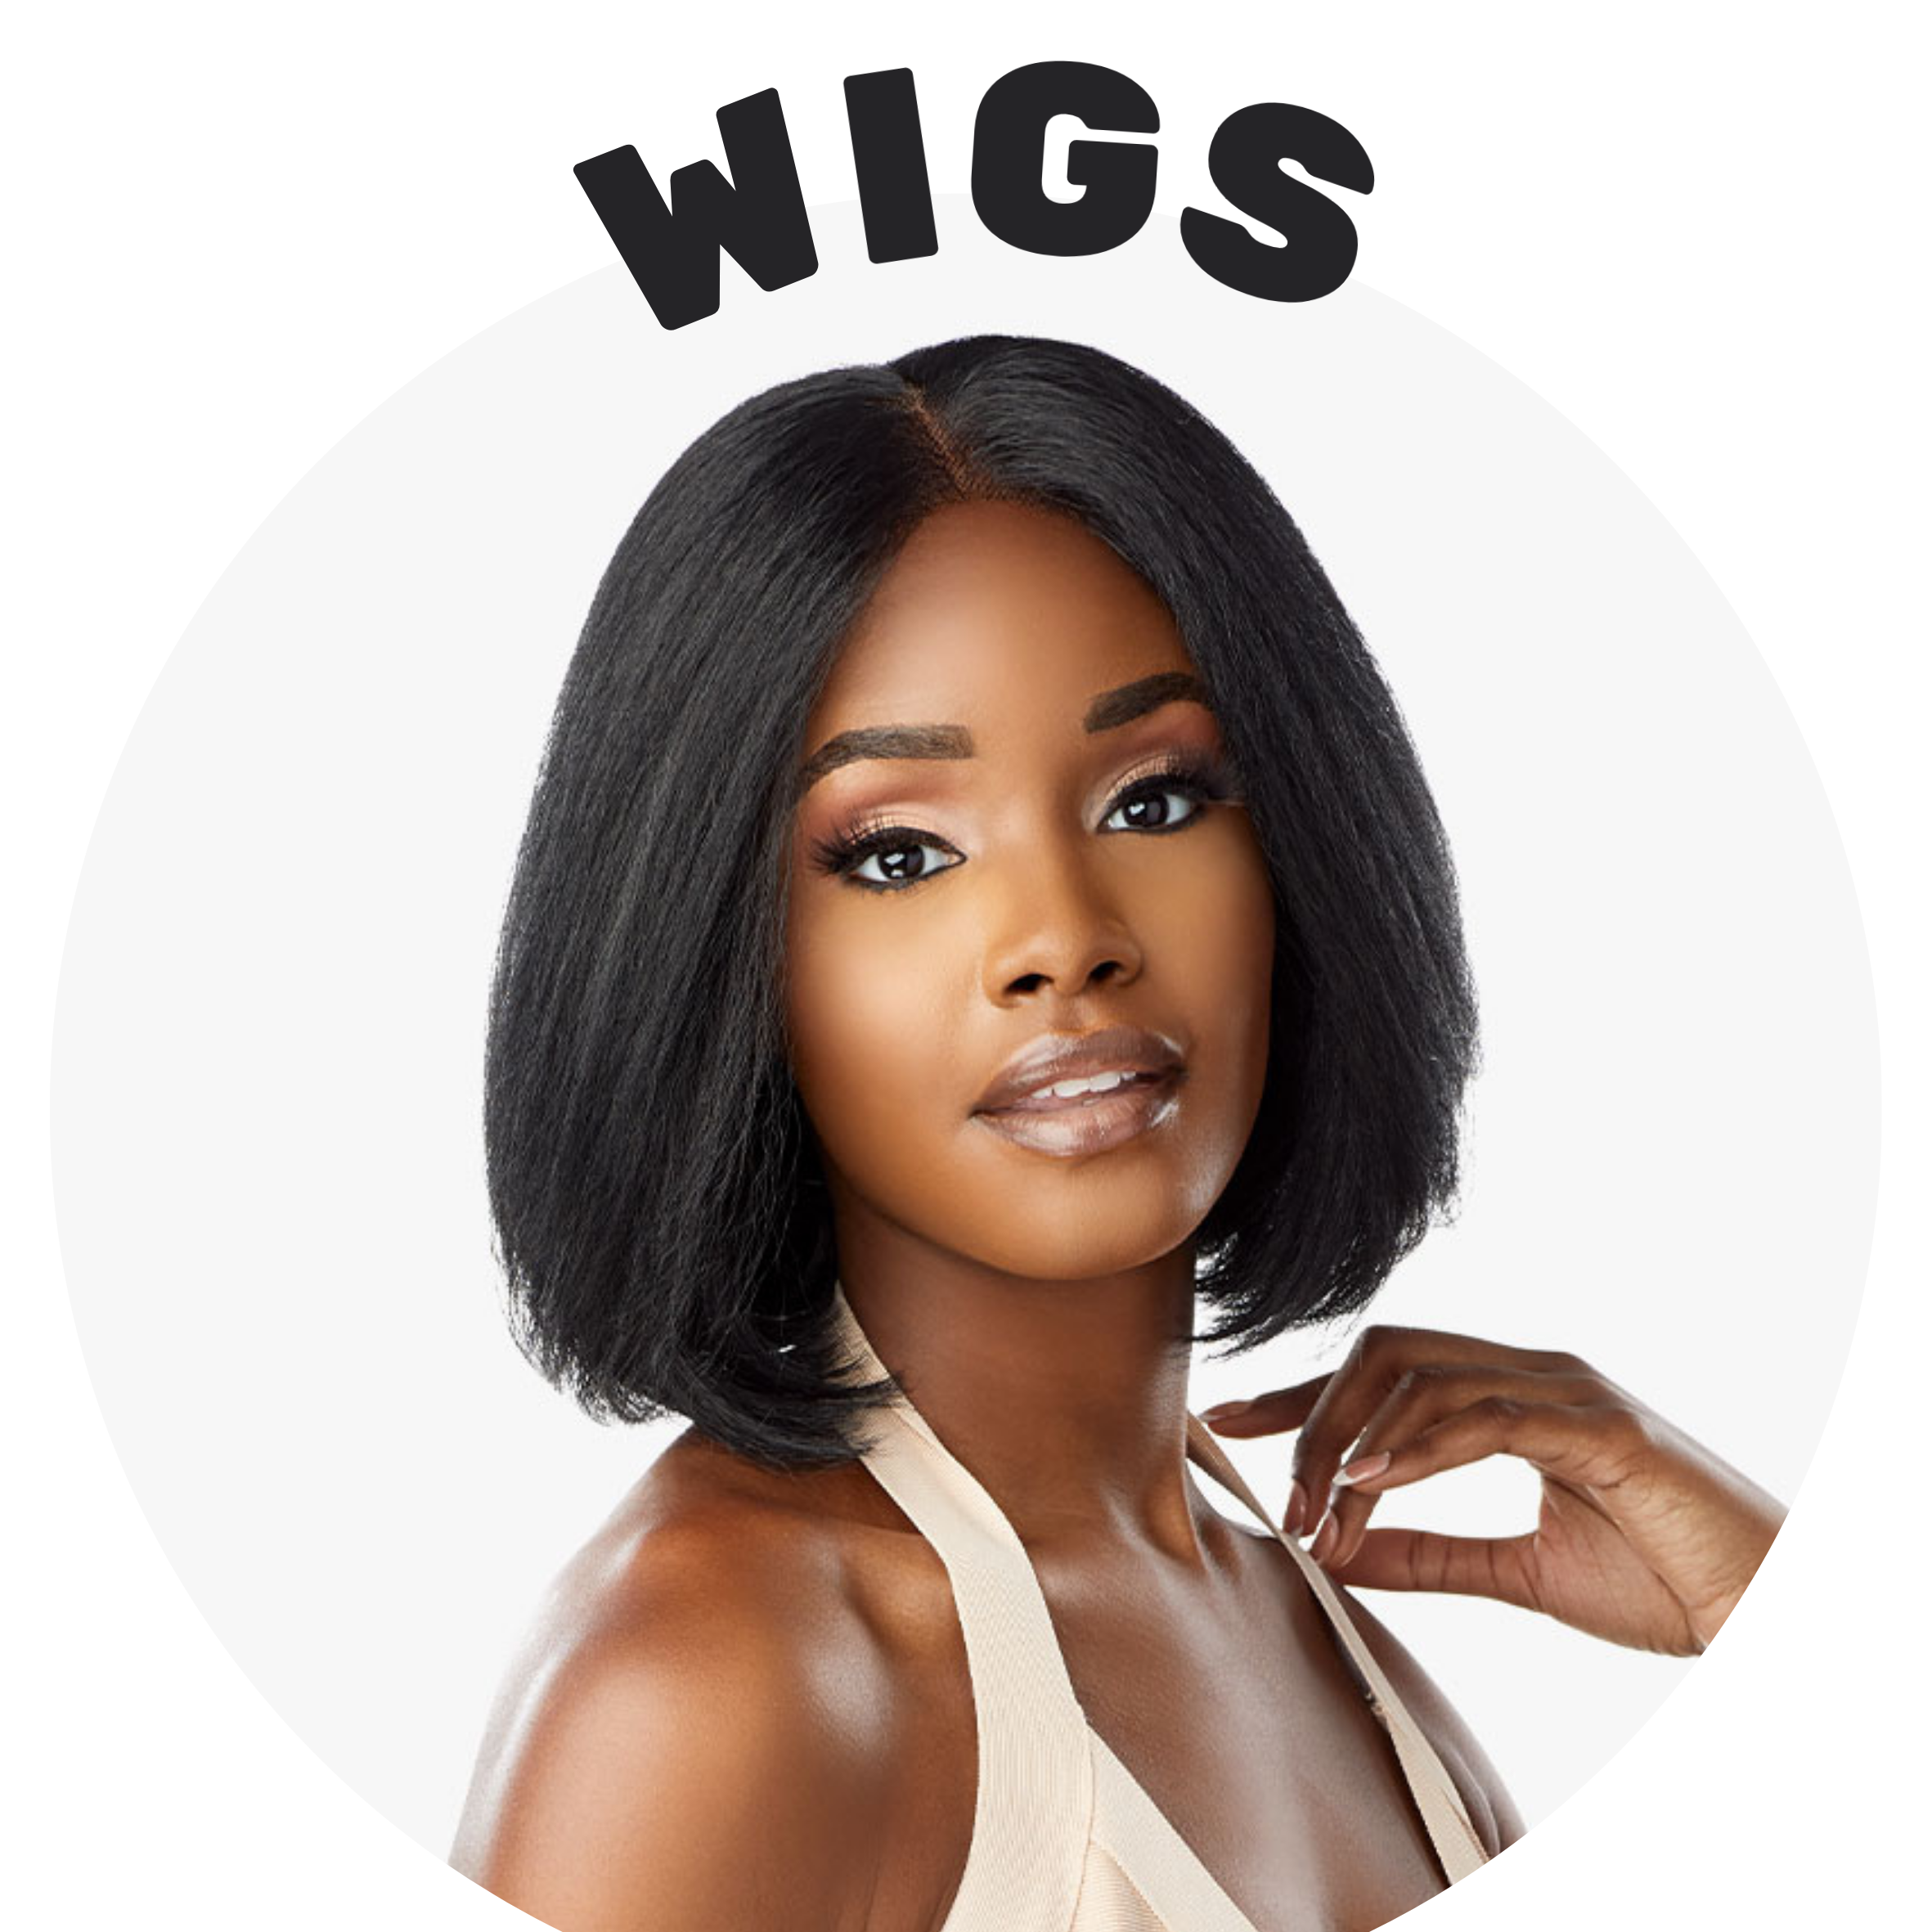 synthetic, human hair blend, human hair, full cap and lace front wigs affordable